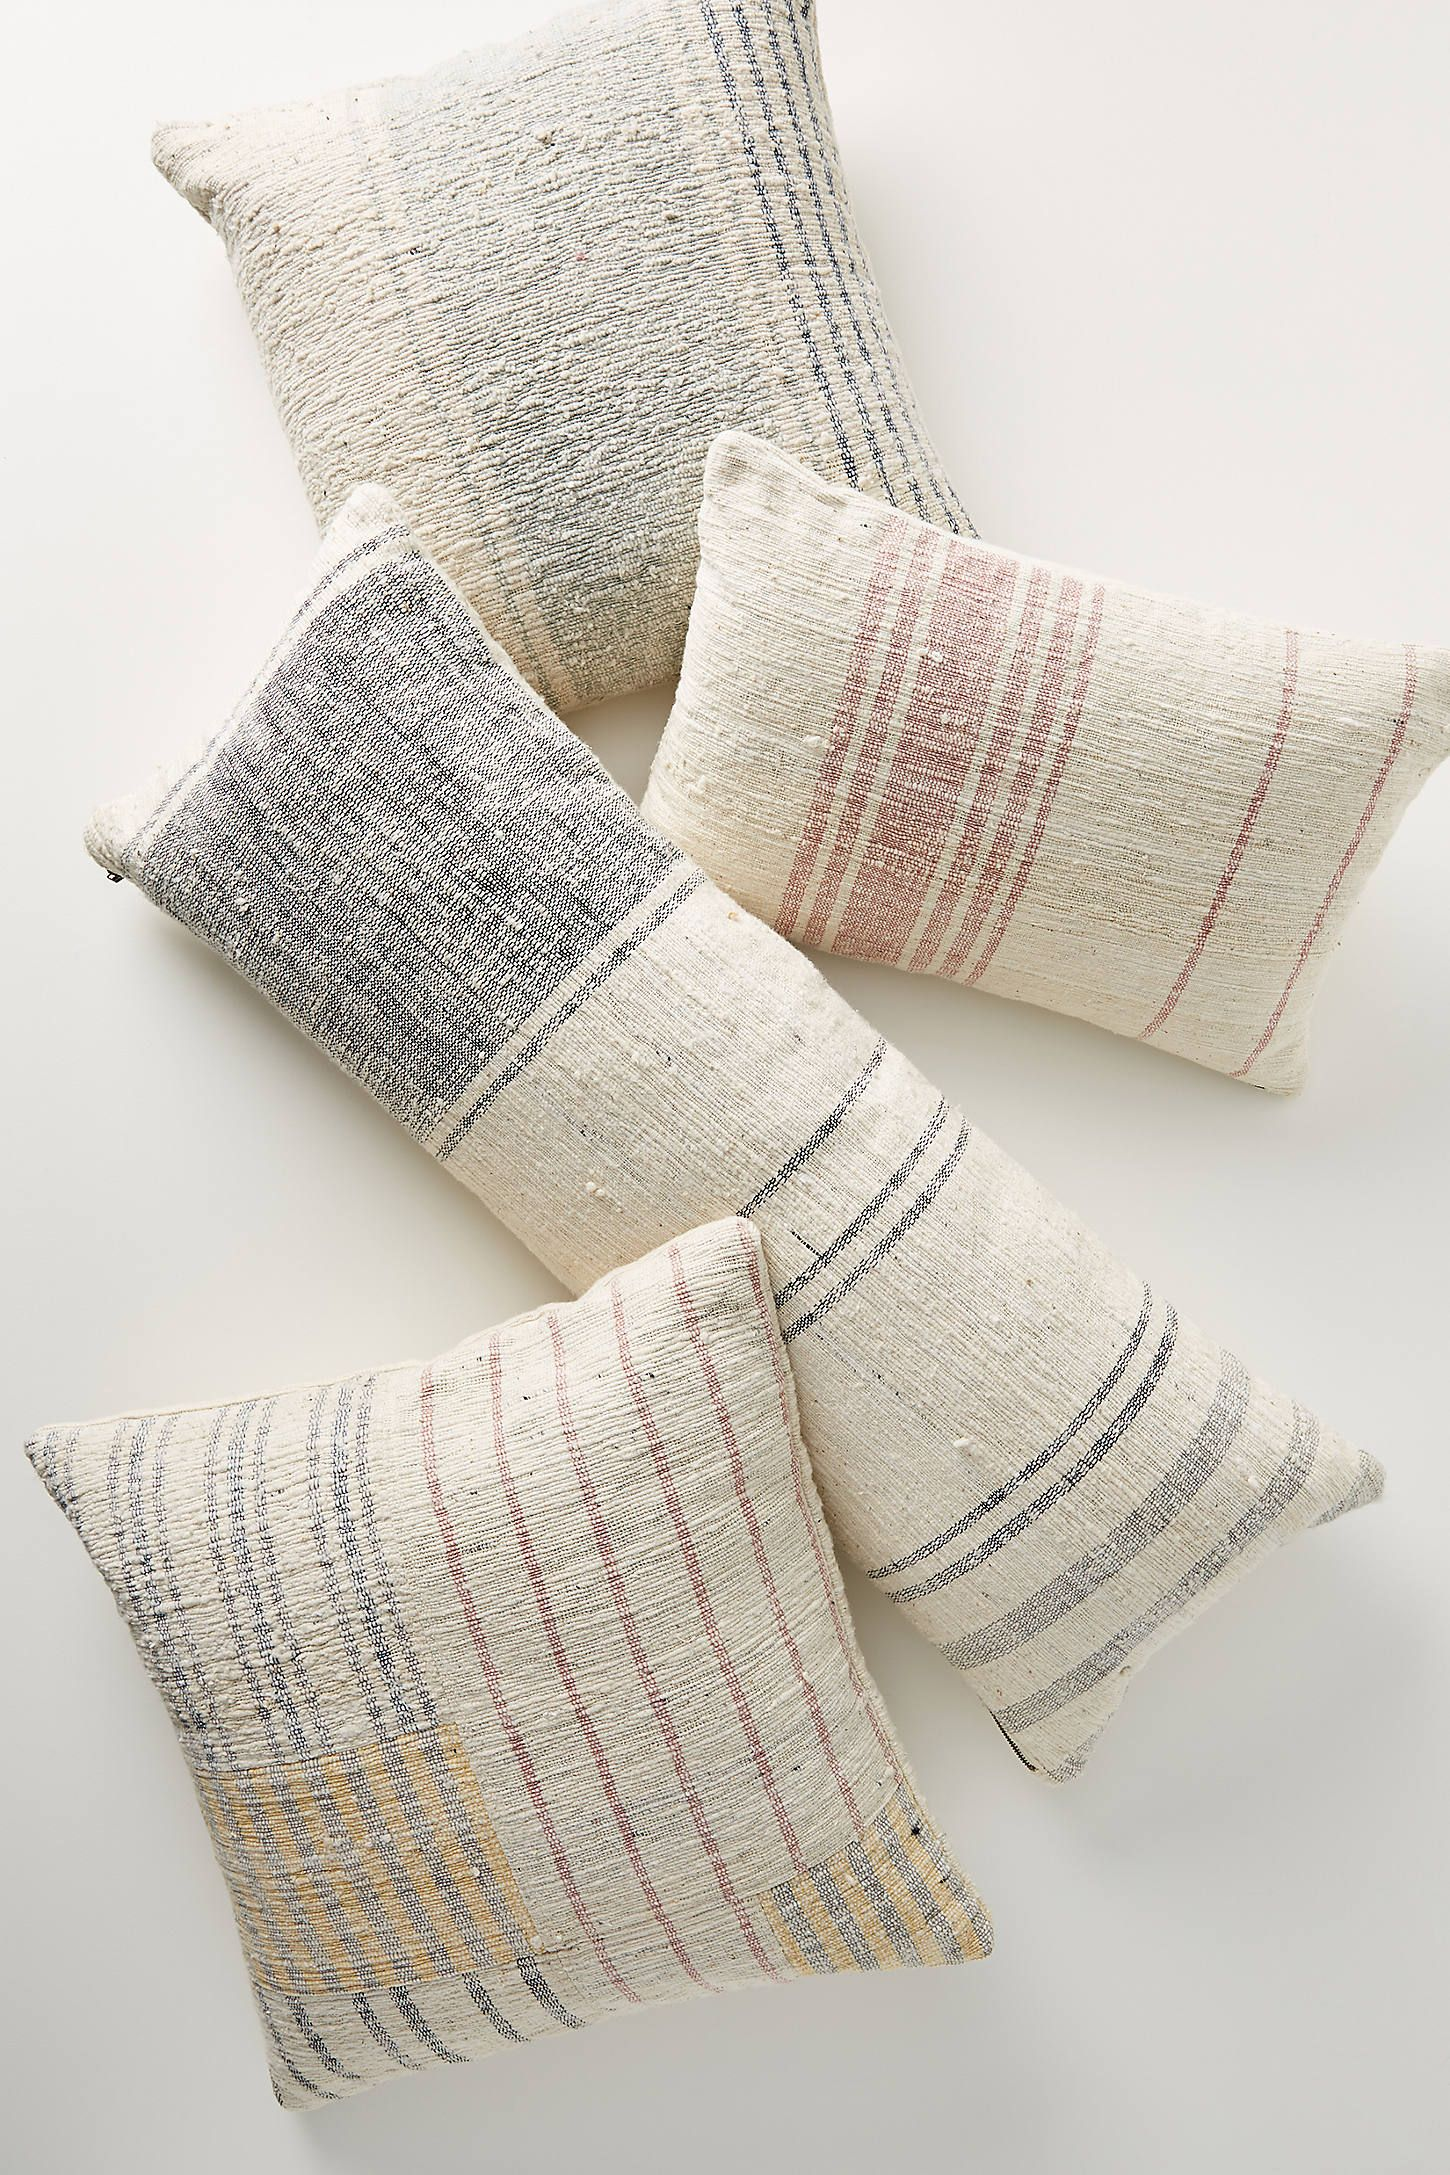 Black Pillows by Anthropologie, Handwoven Dylan Pillow